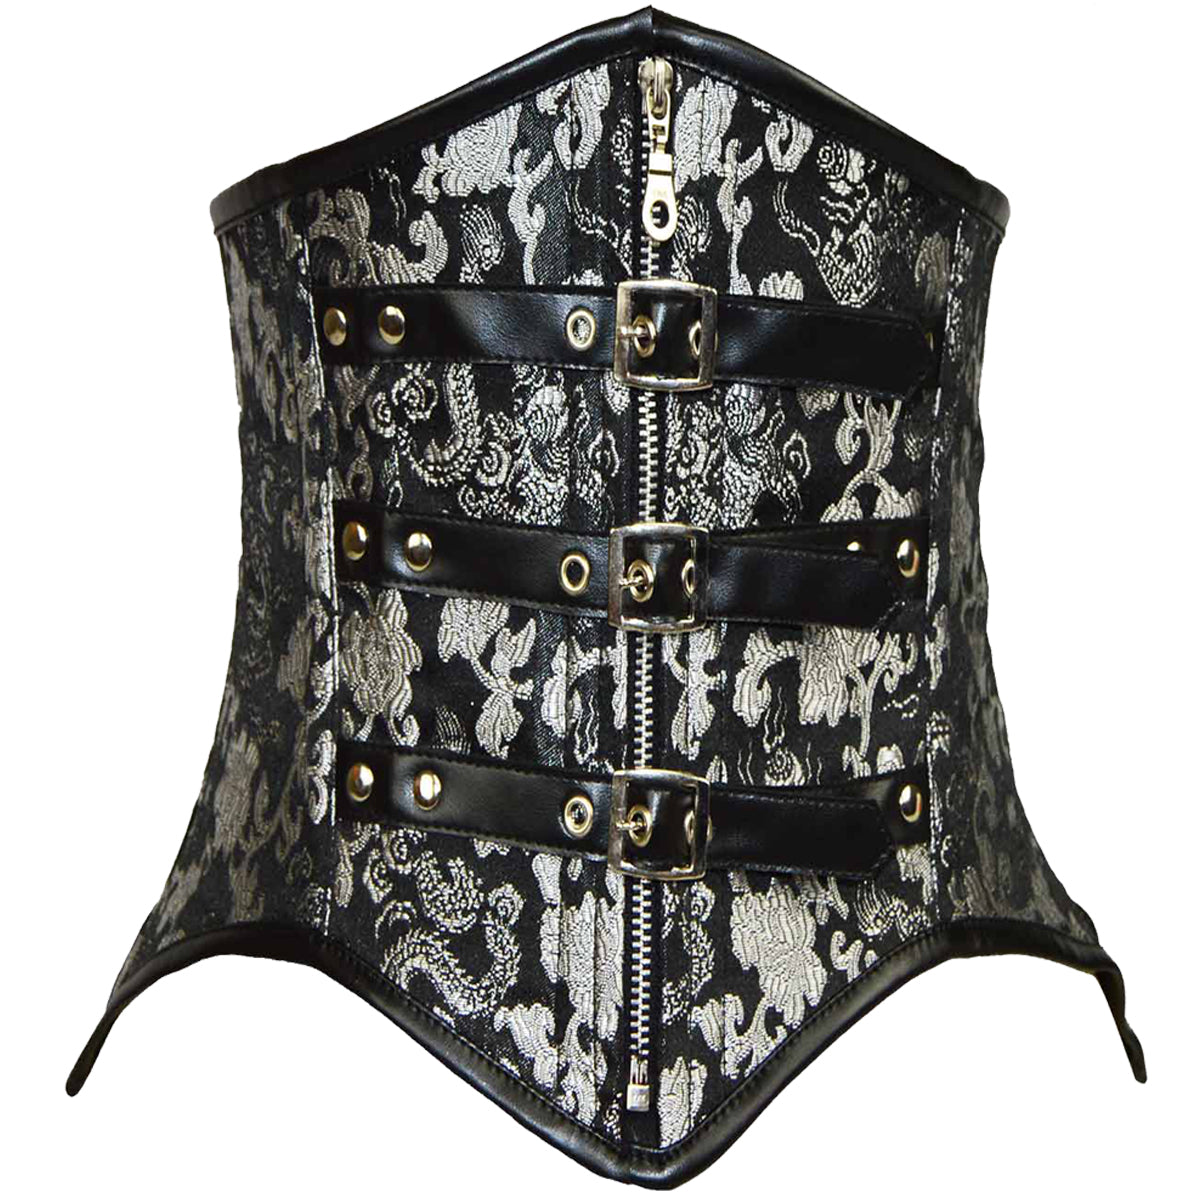 d931b5e290 VC1406 Ladies Brocade Corset Black with Silver – Vance Leather